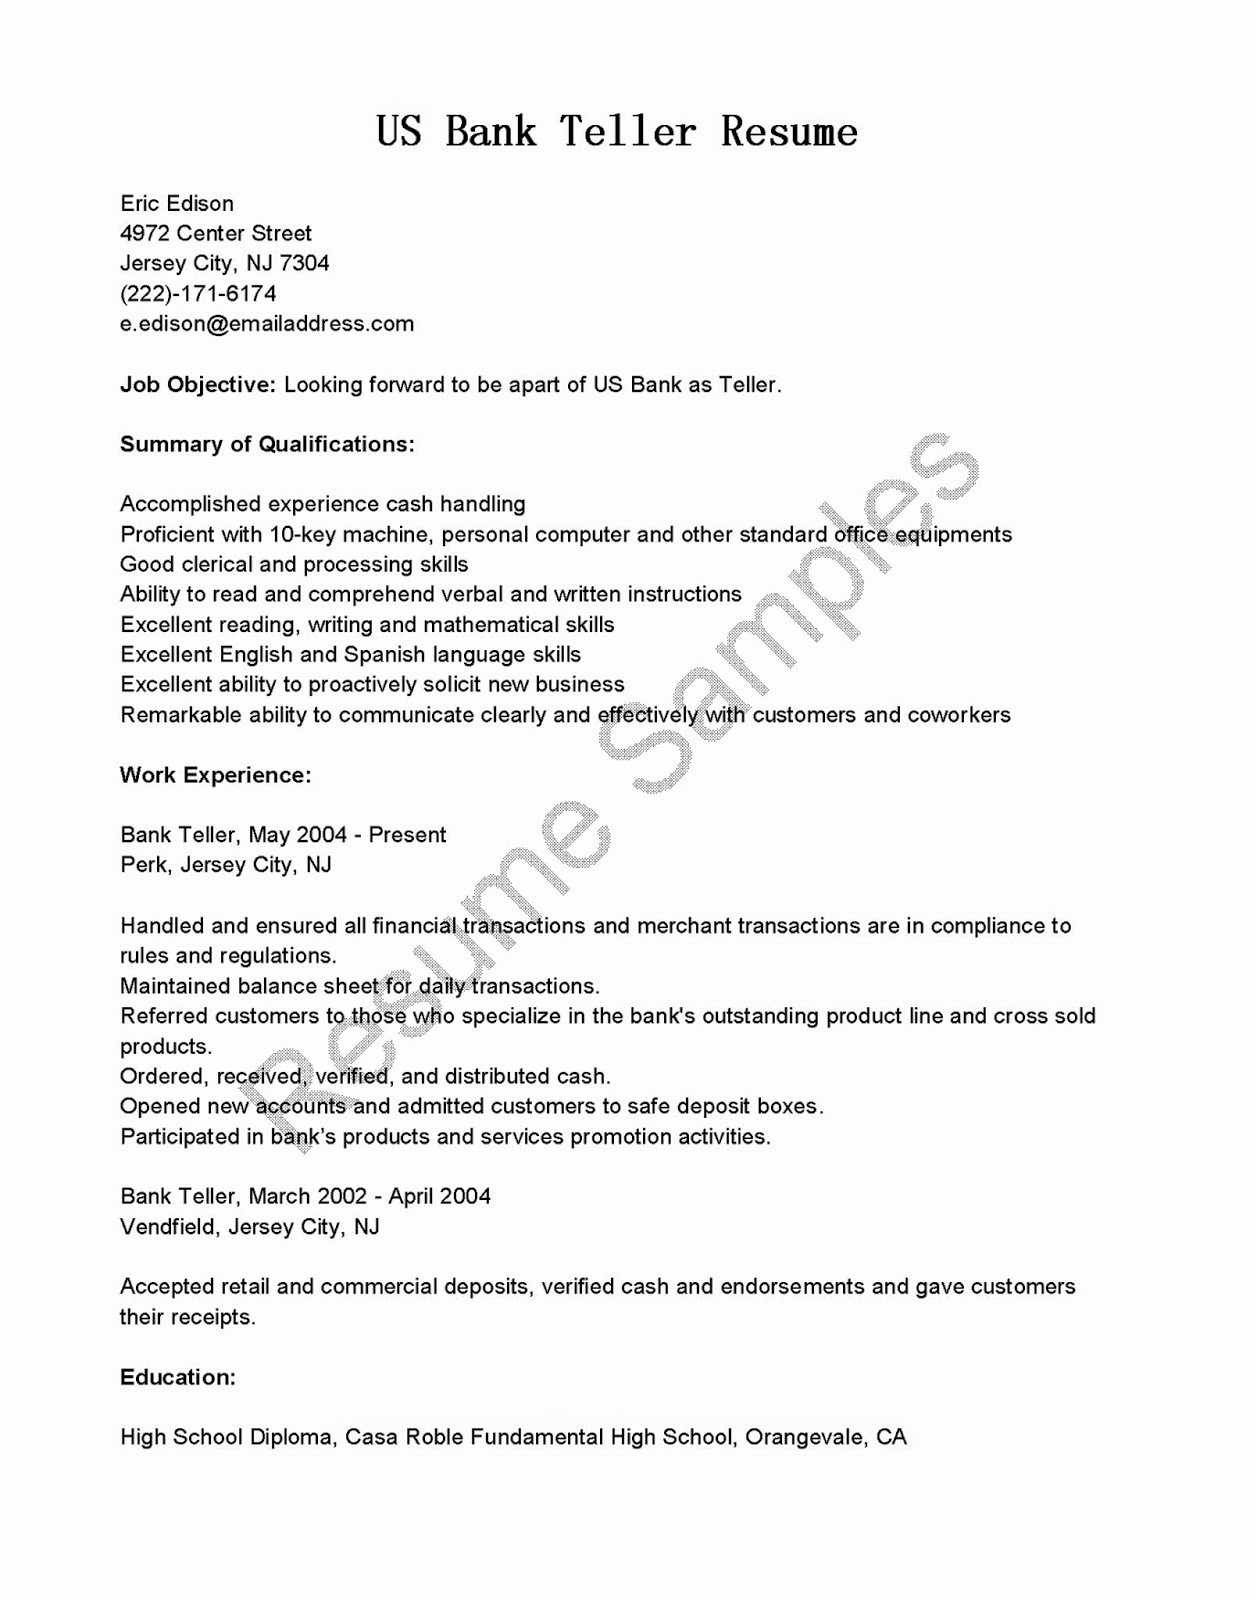 Resume Samples Us Bank Teller Resume Sample